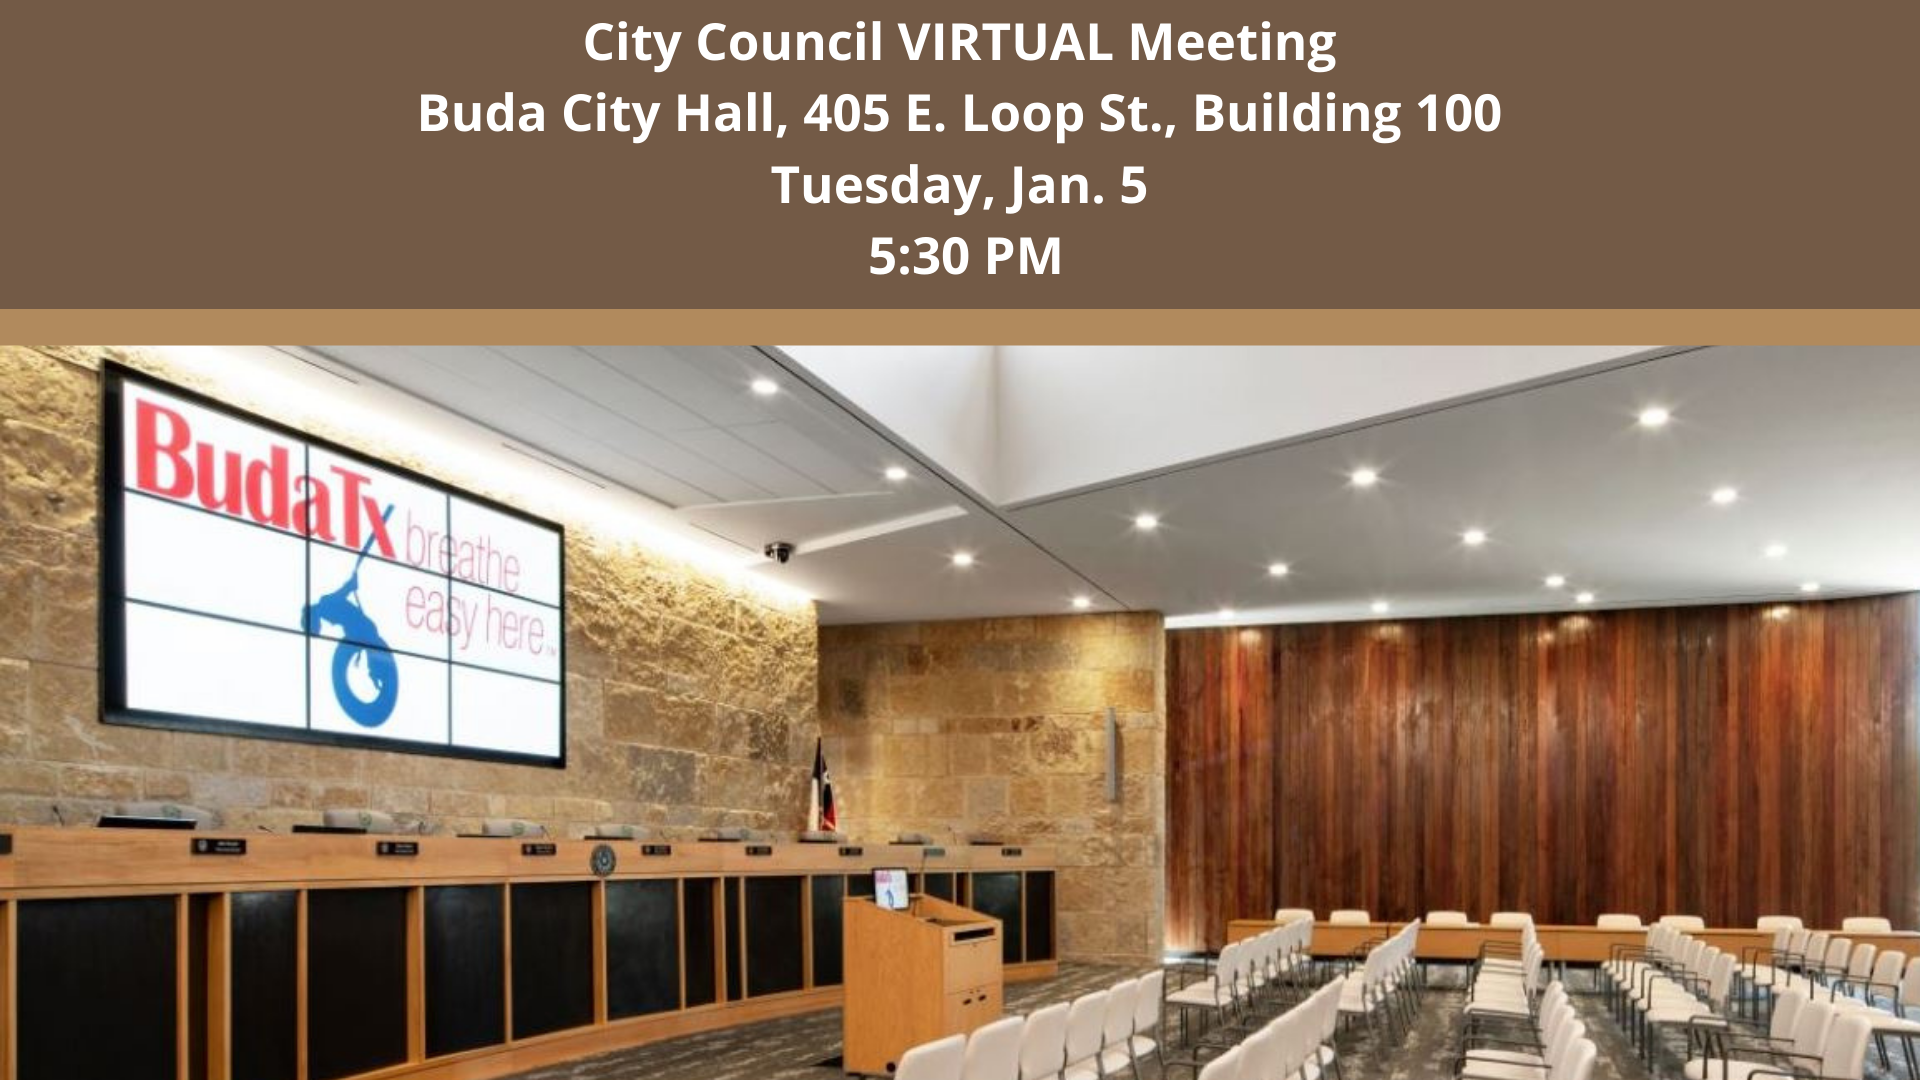 City Council Meeting - Jan. 5, 2021